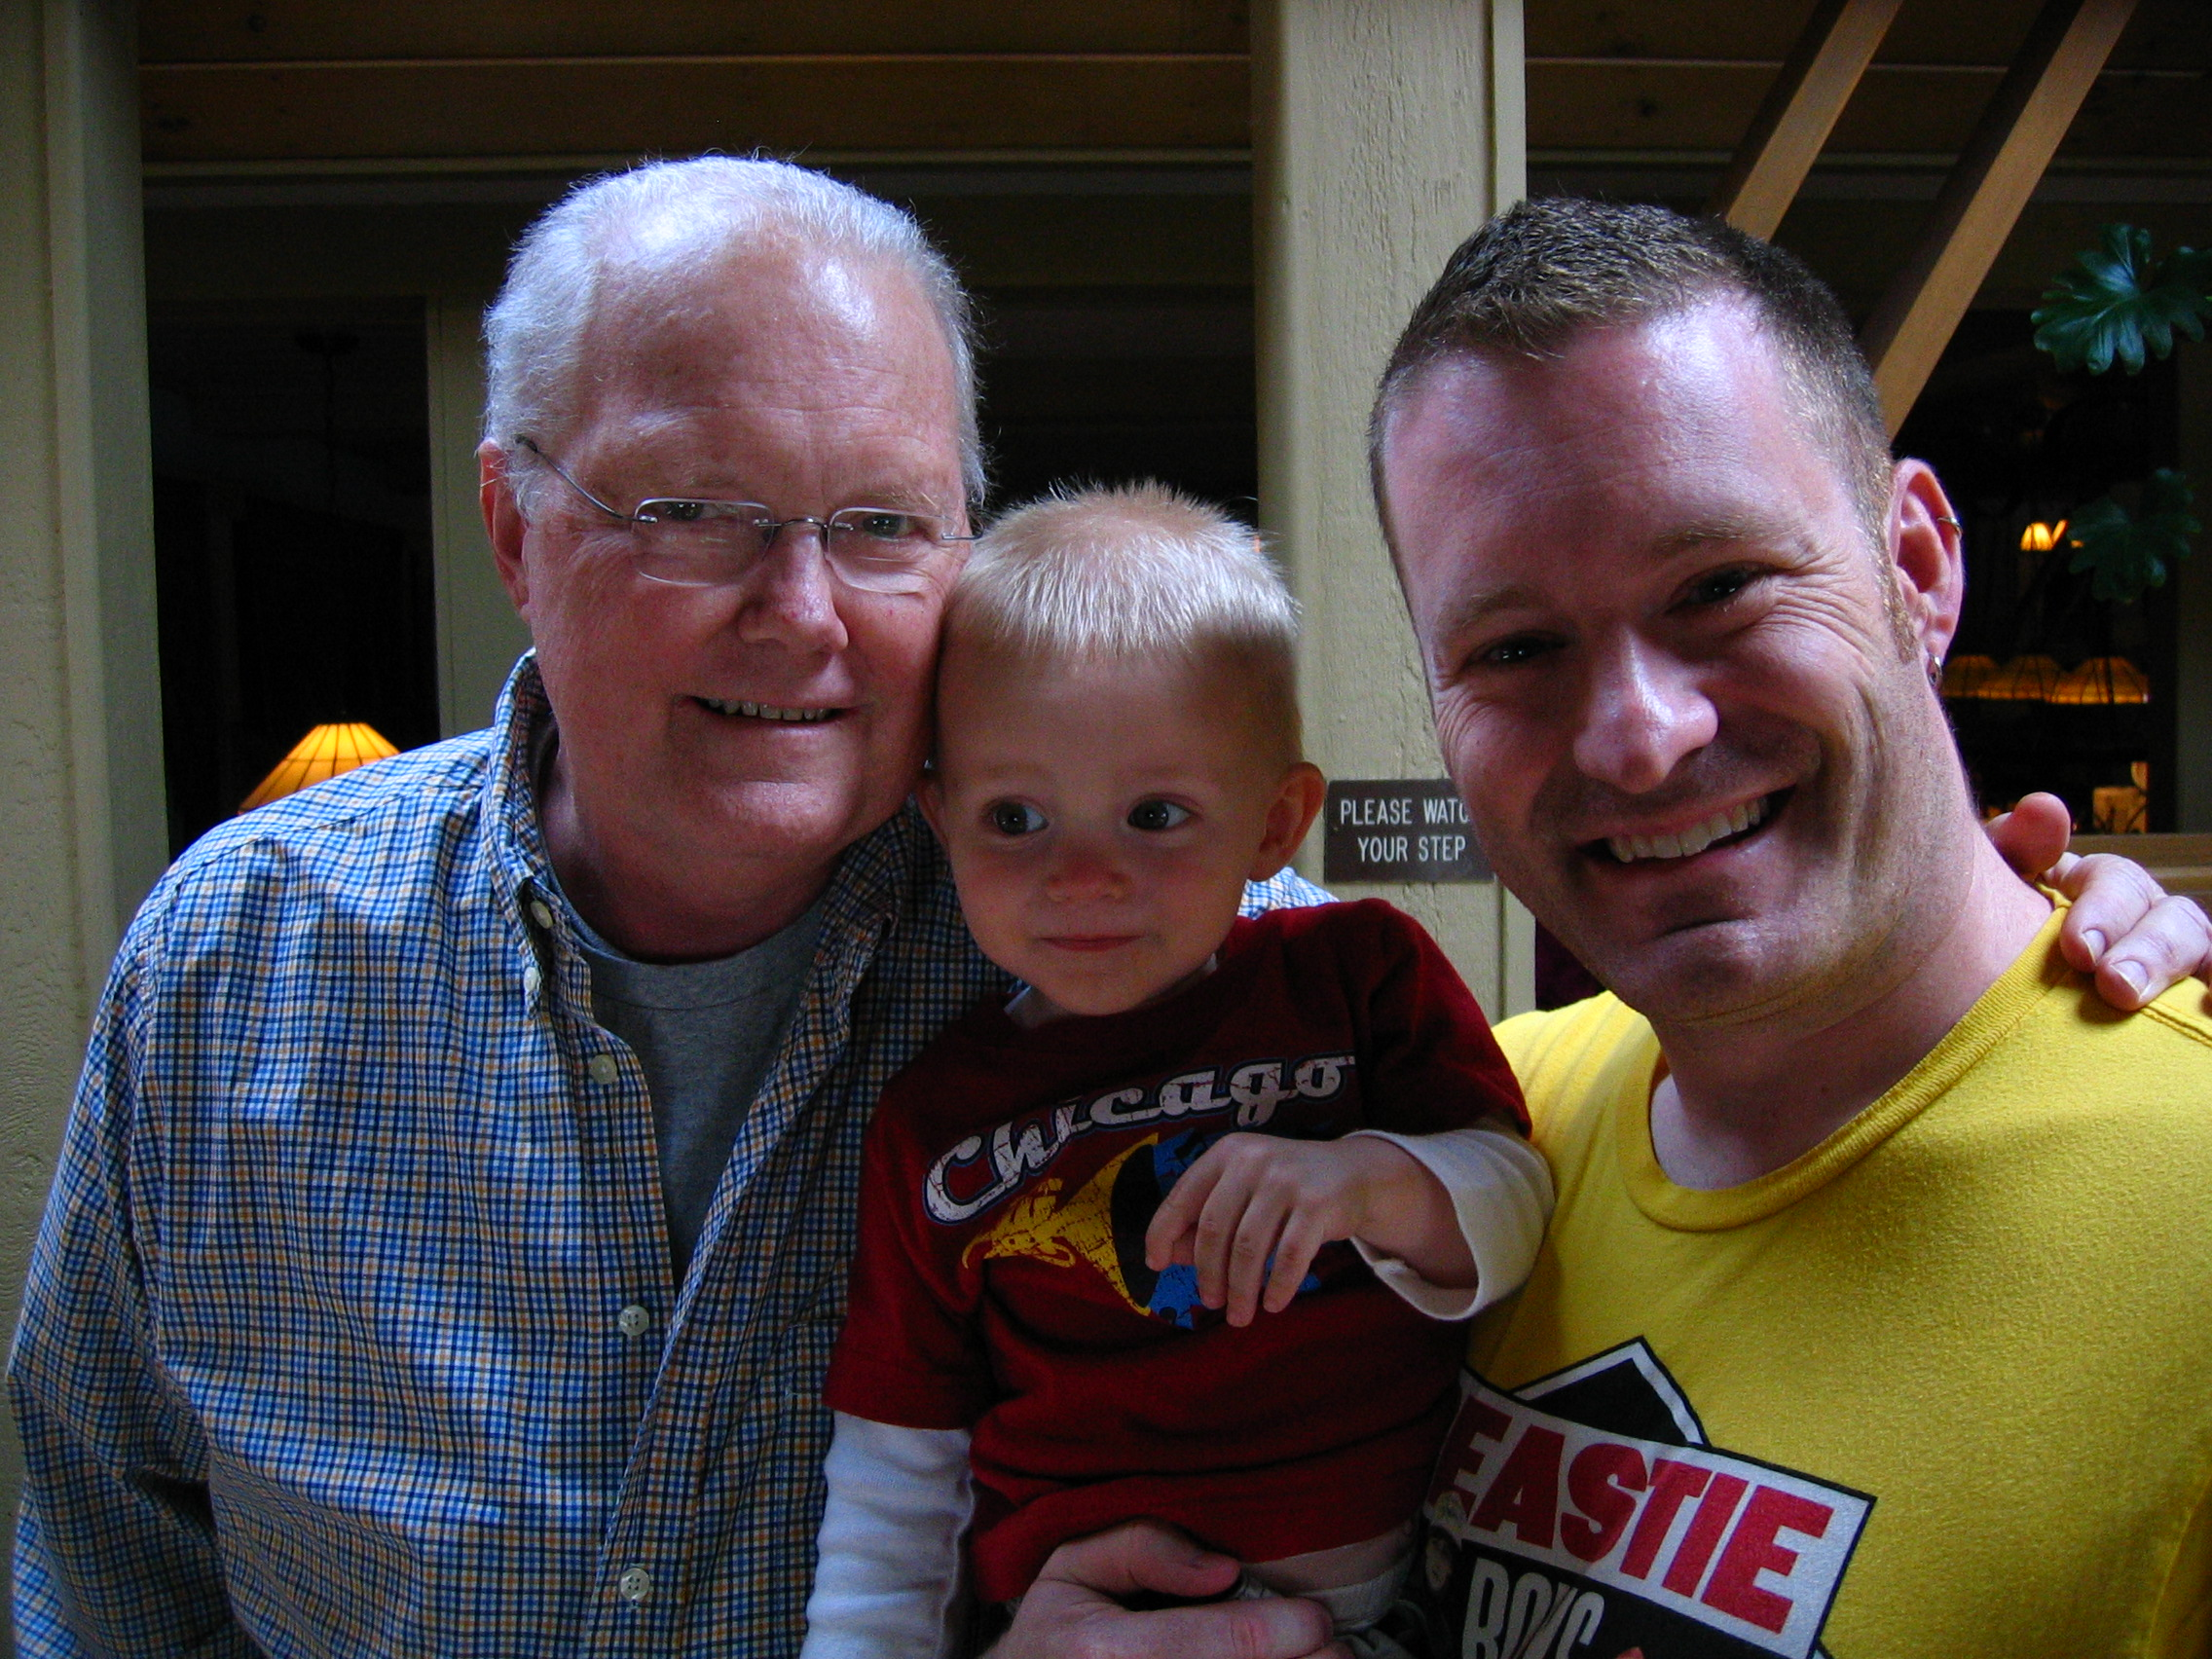 Dad, Gabe and I in 2007. A few months before his death.